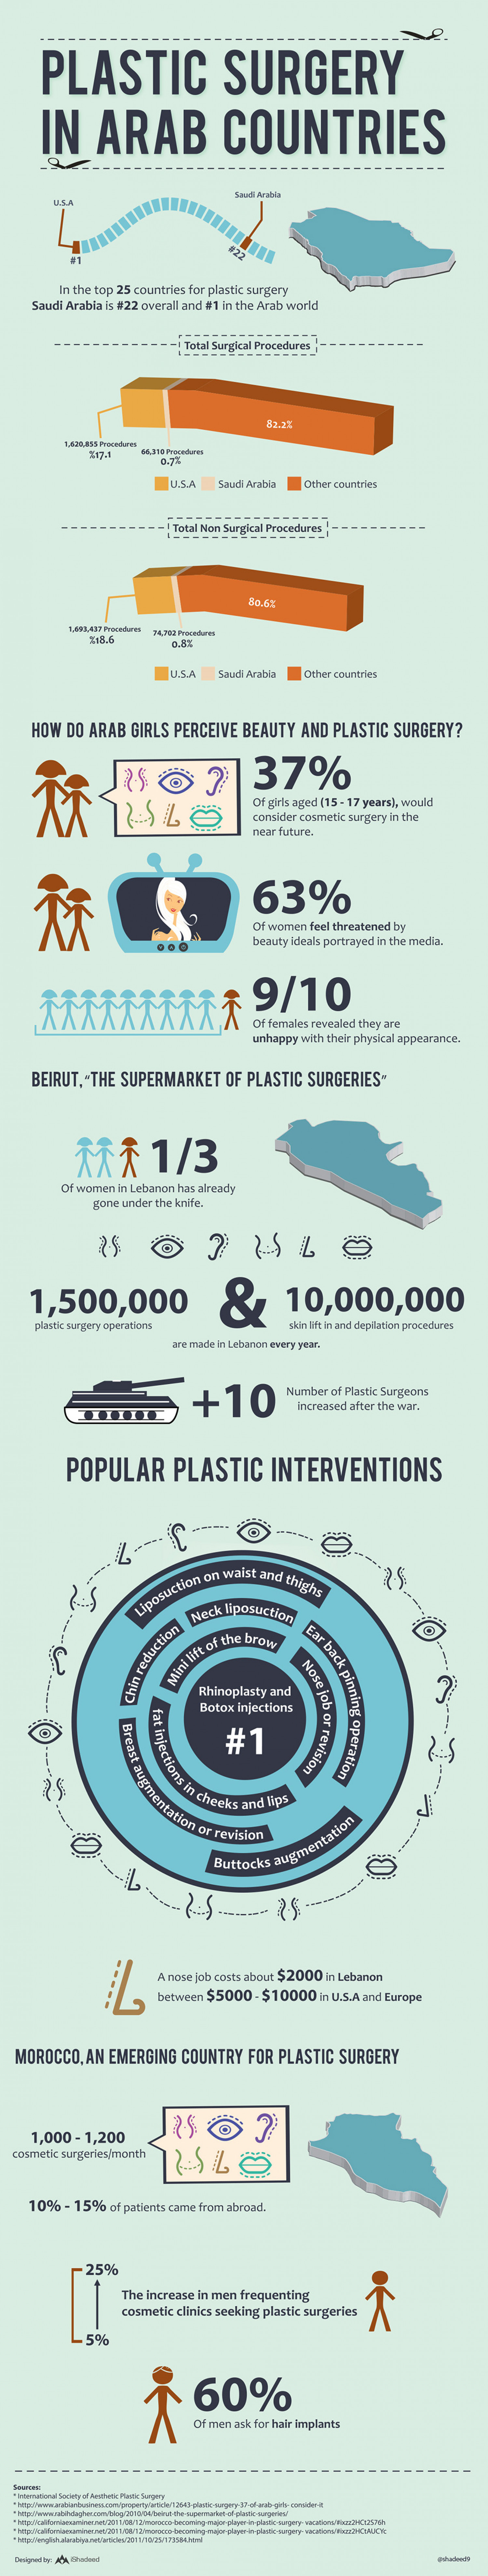 Plastic Surgery In Arab Countries Infographic